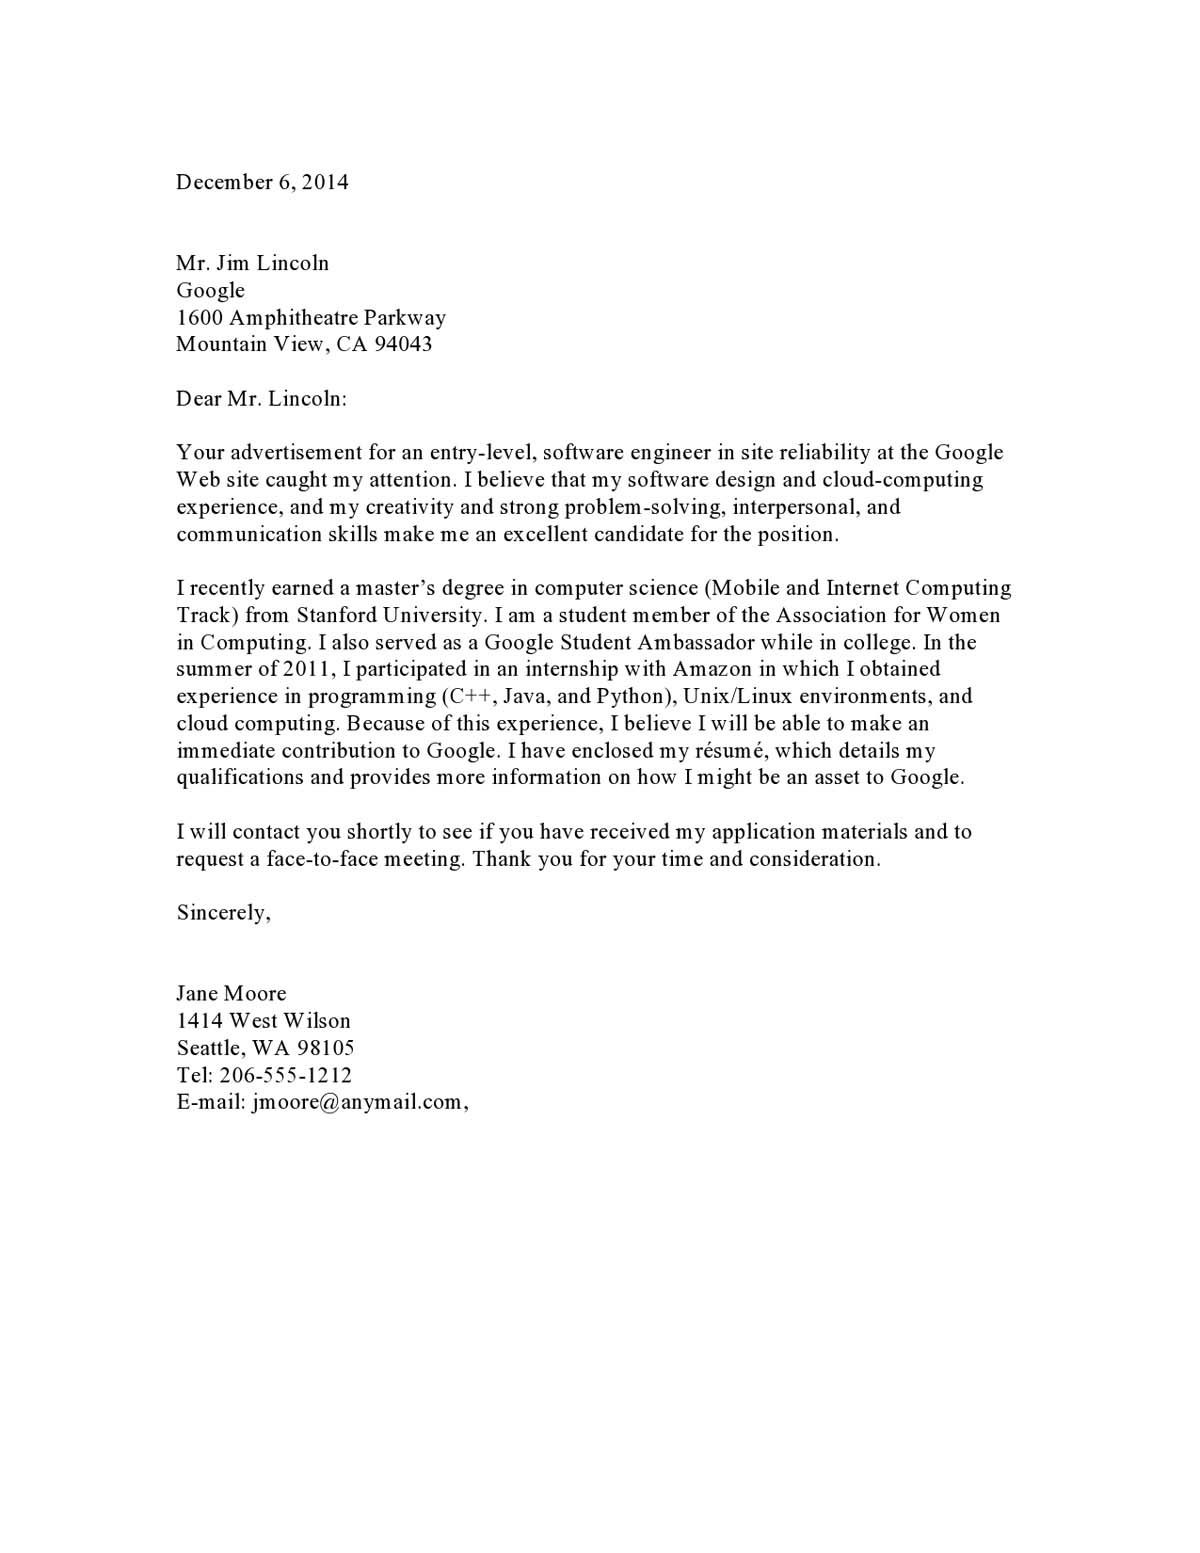 004 Unique Basic Covering Letter Template Concept  Simple Application Job Sample CoverFull